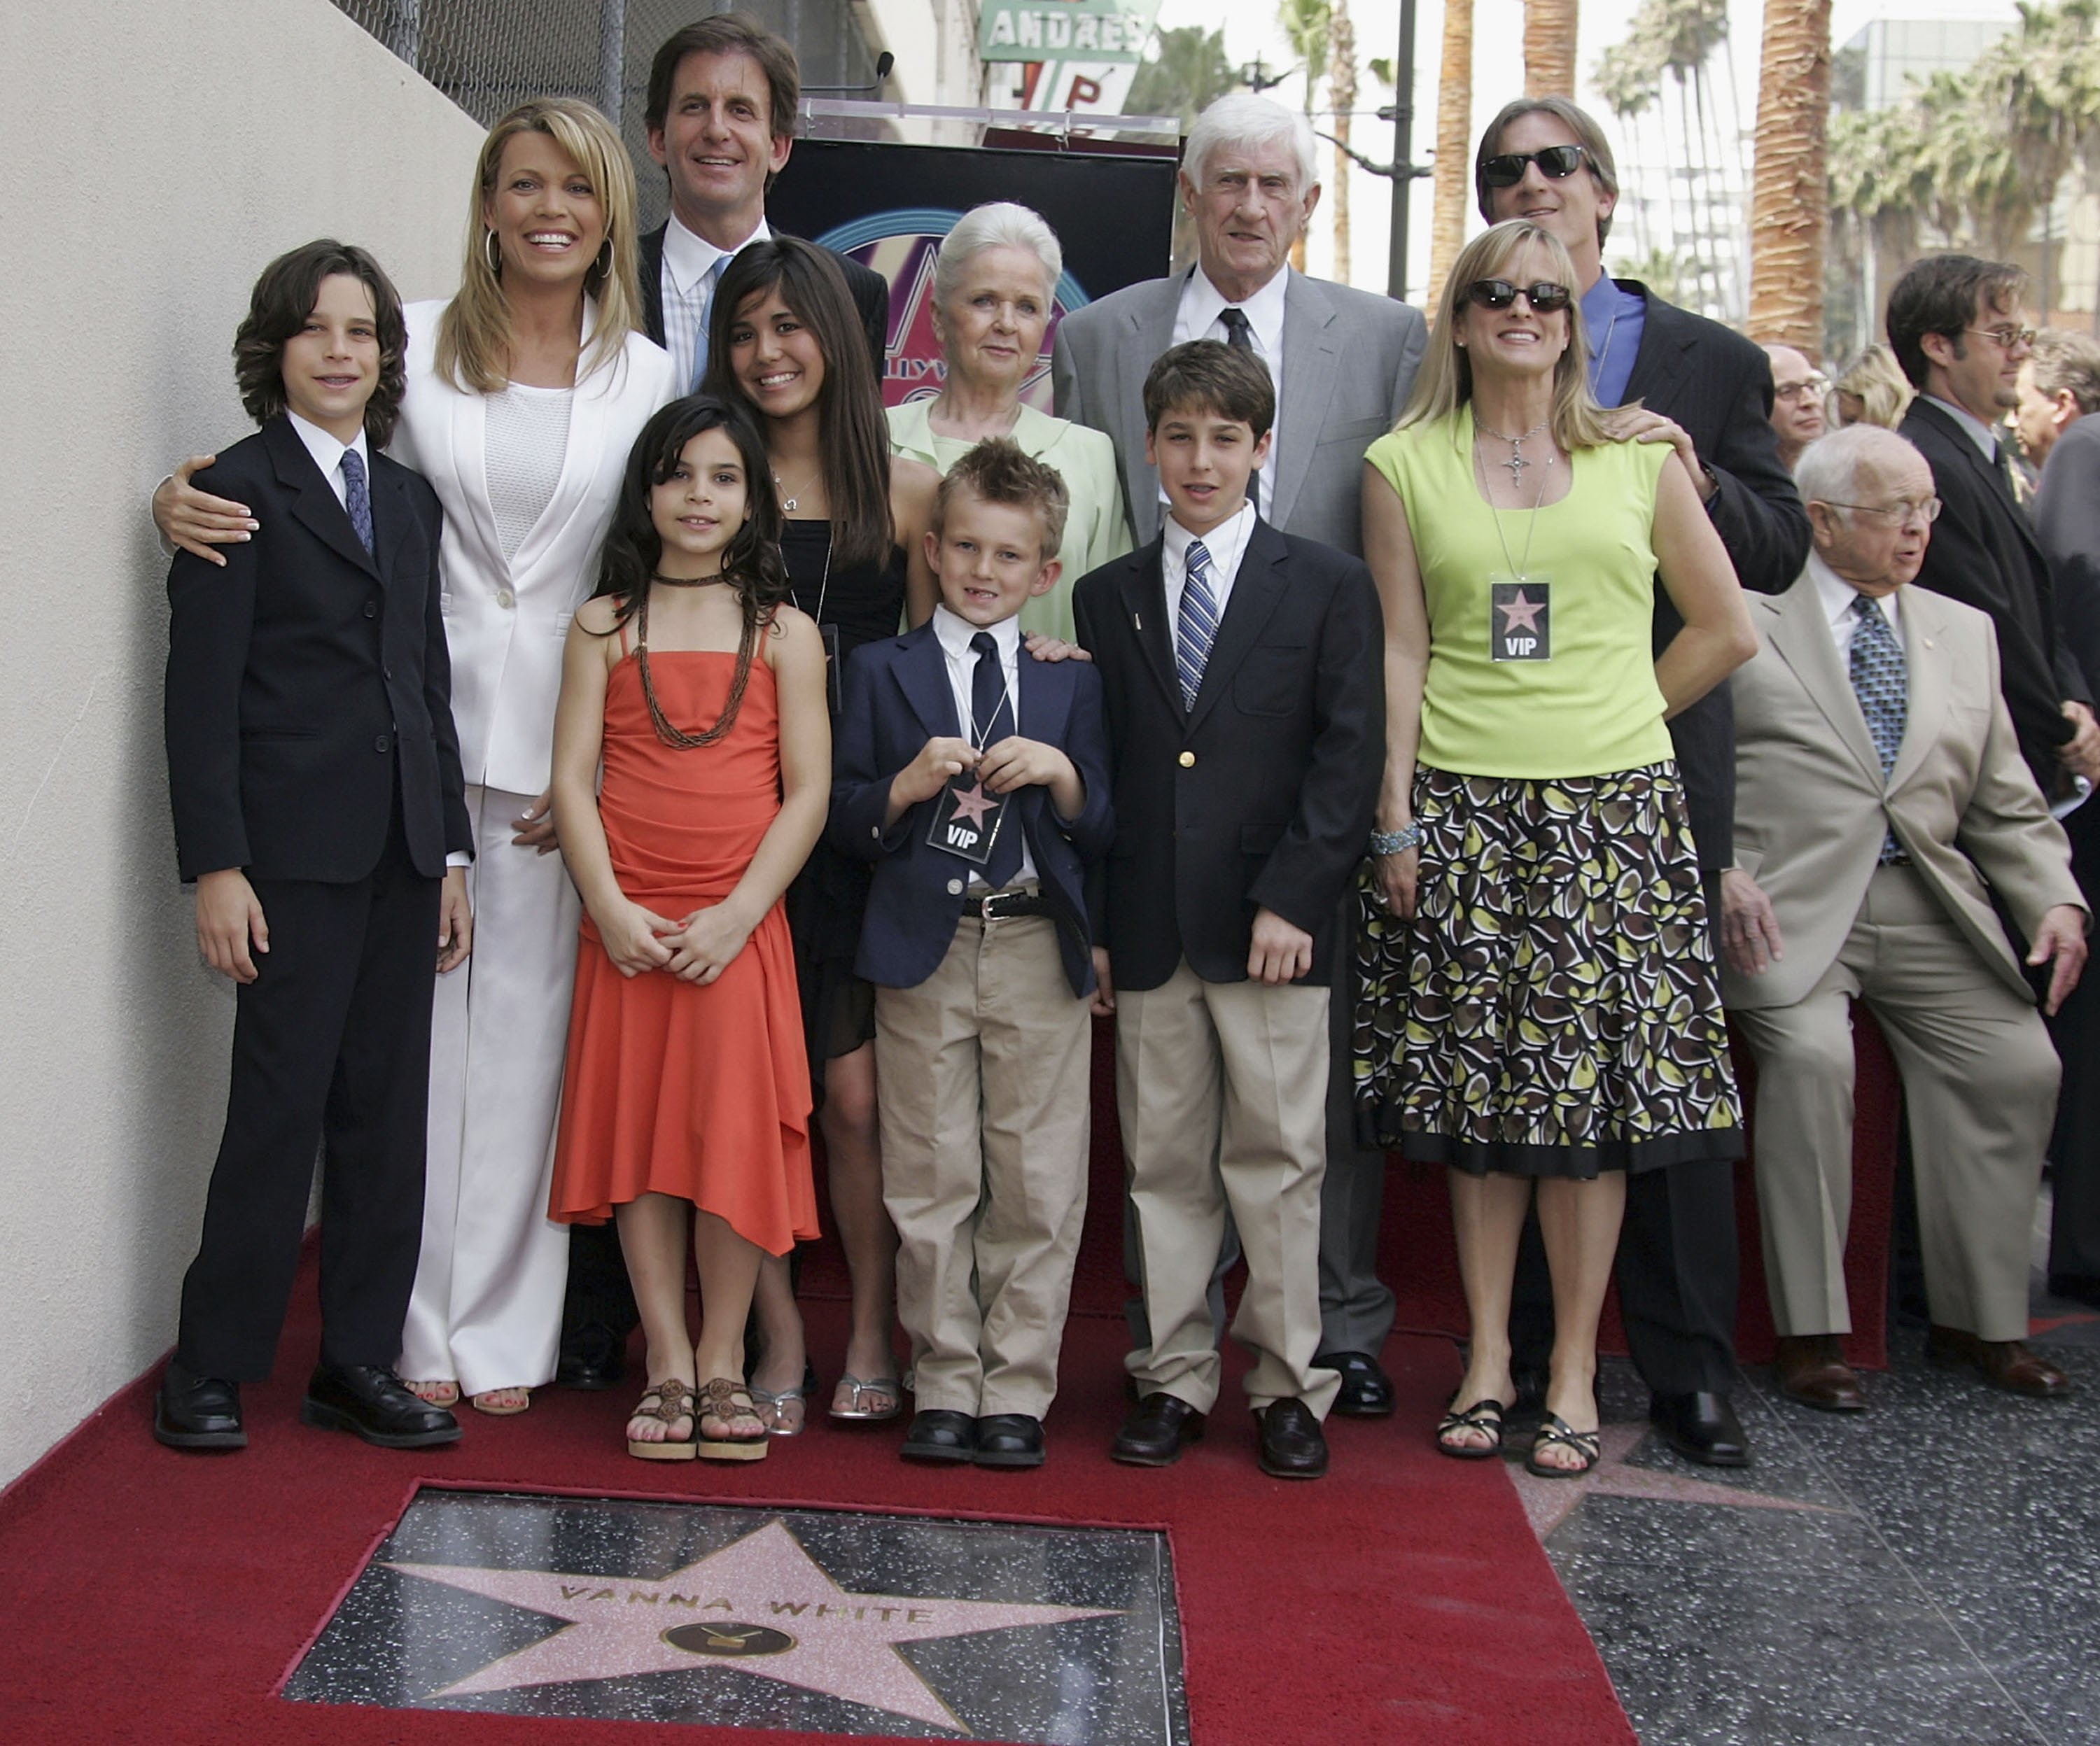 Wheel of Fortune Co-host Vanna White poses with family and friends after receiving A Star On The Walk Of Fame. | Source: Getty Images